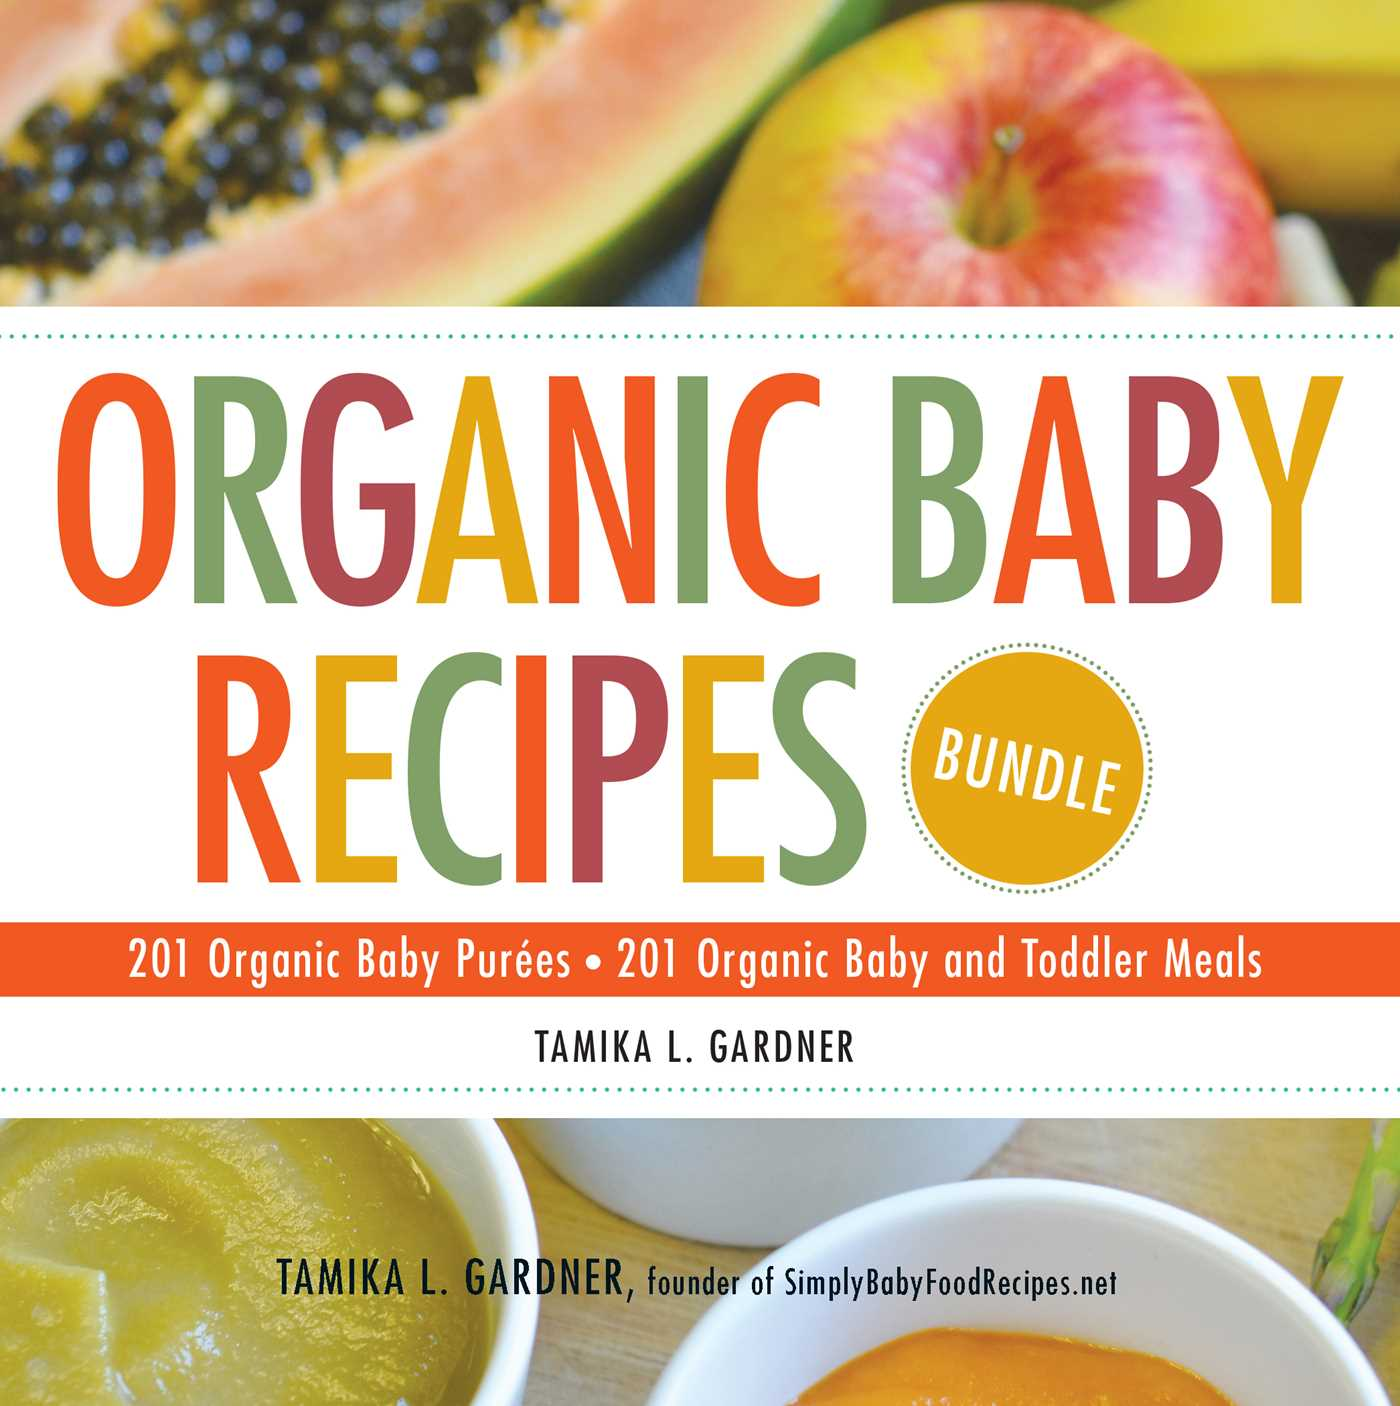 Organic baby recipes bundle ebook by tamika l gardner official book cover image jpg organic baby recipes bundle forumfinder Choice Image